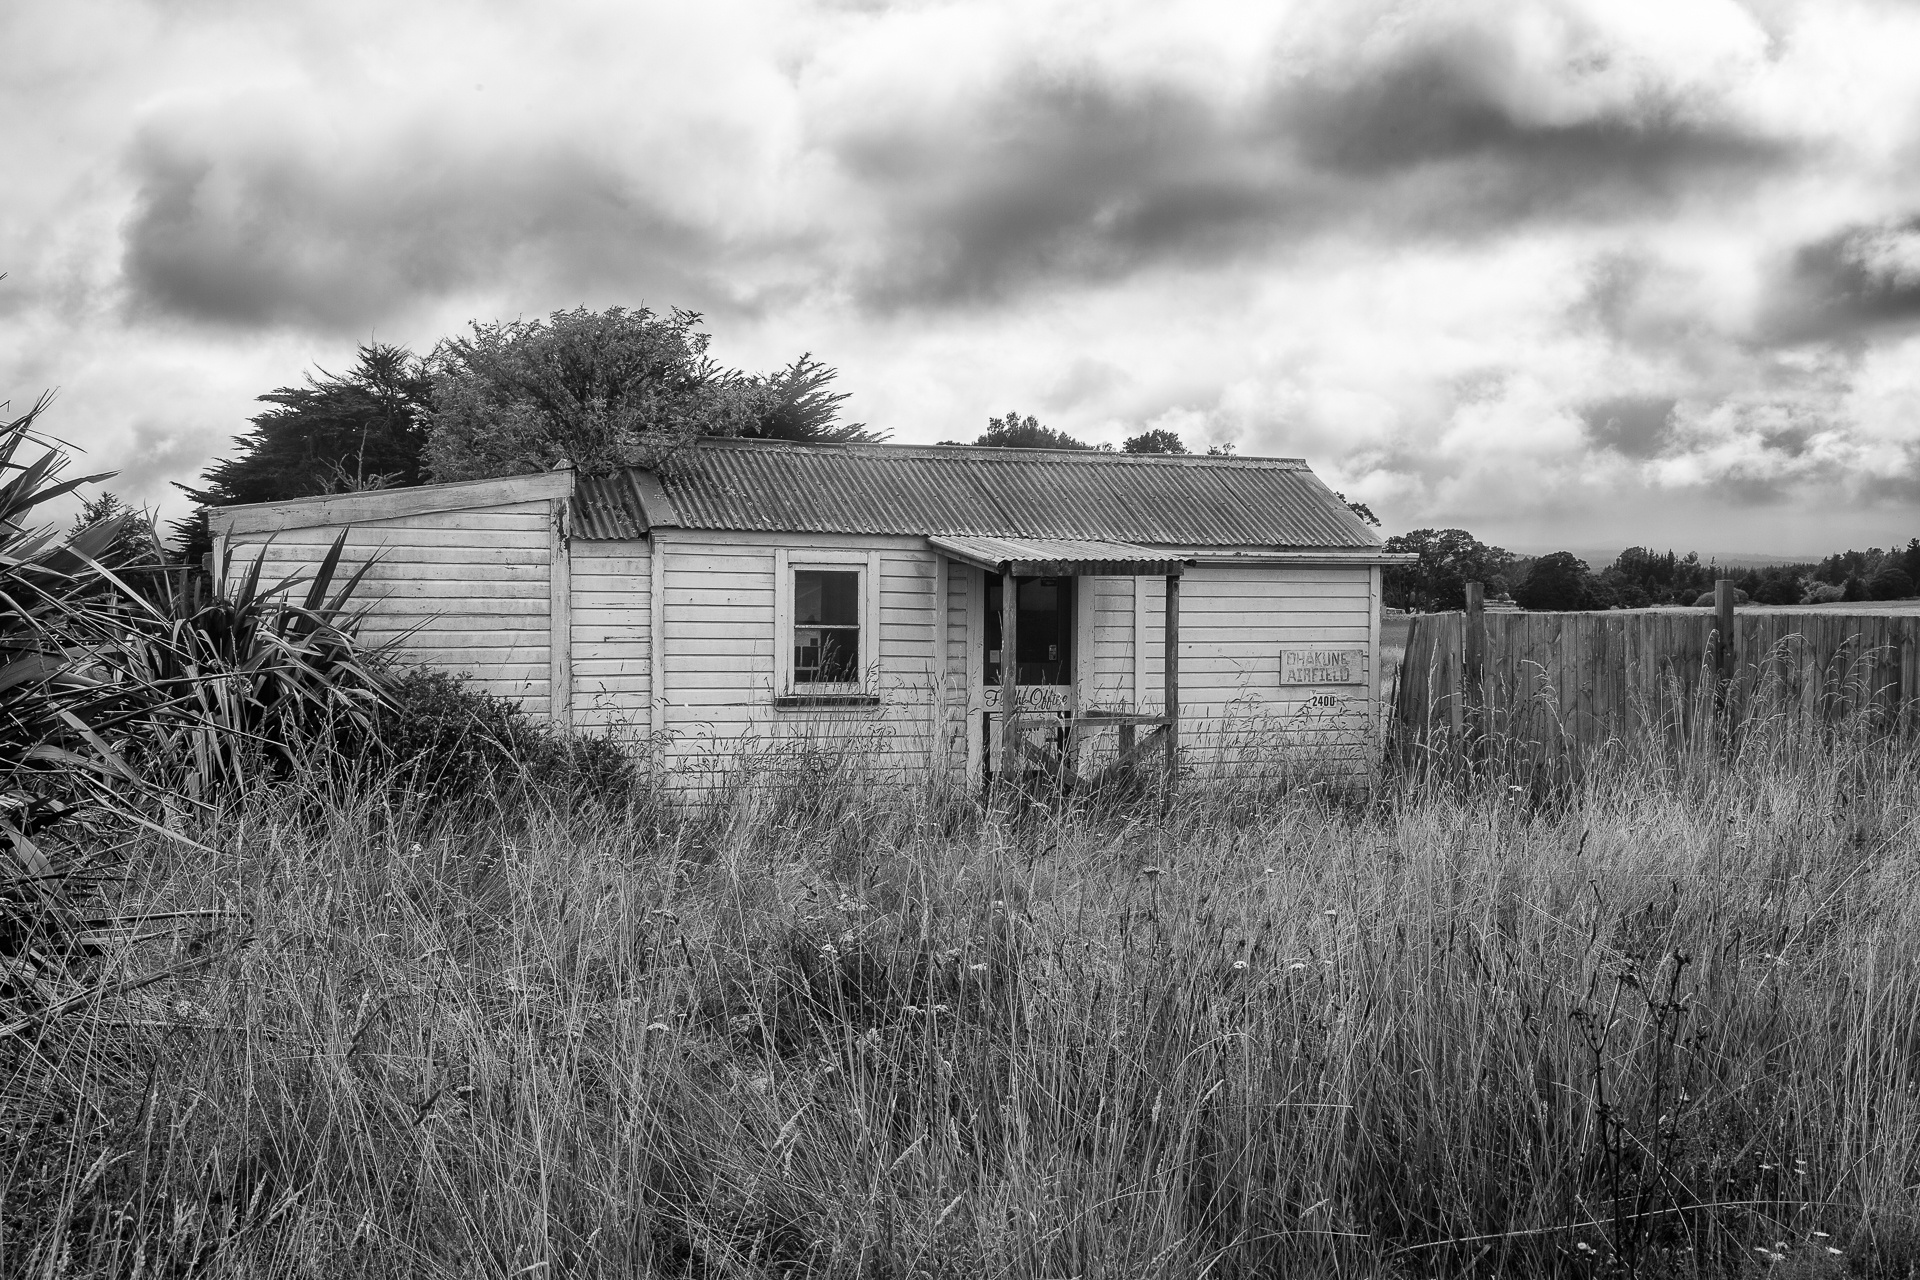 Abandoned building on old rural airfield